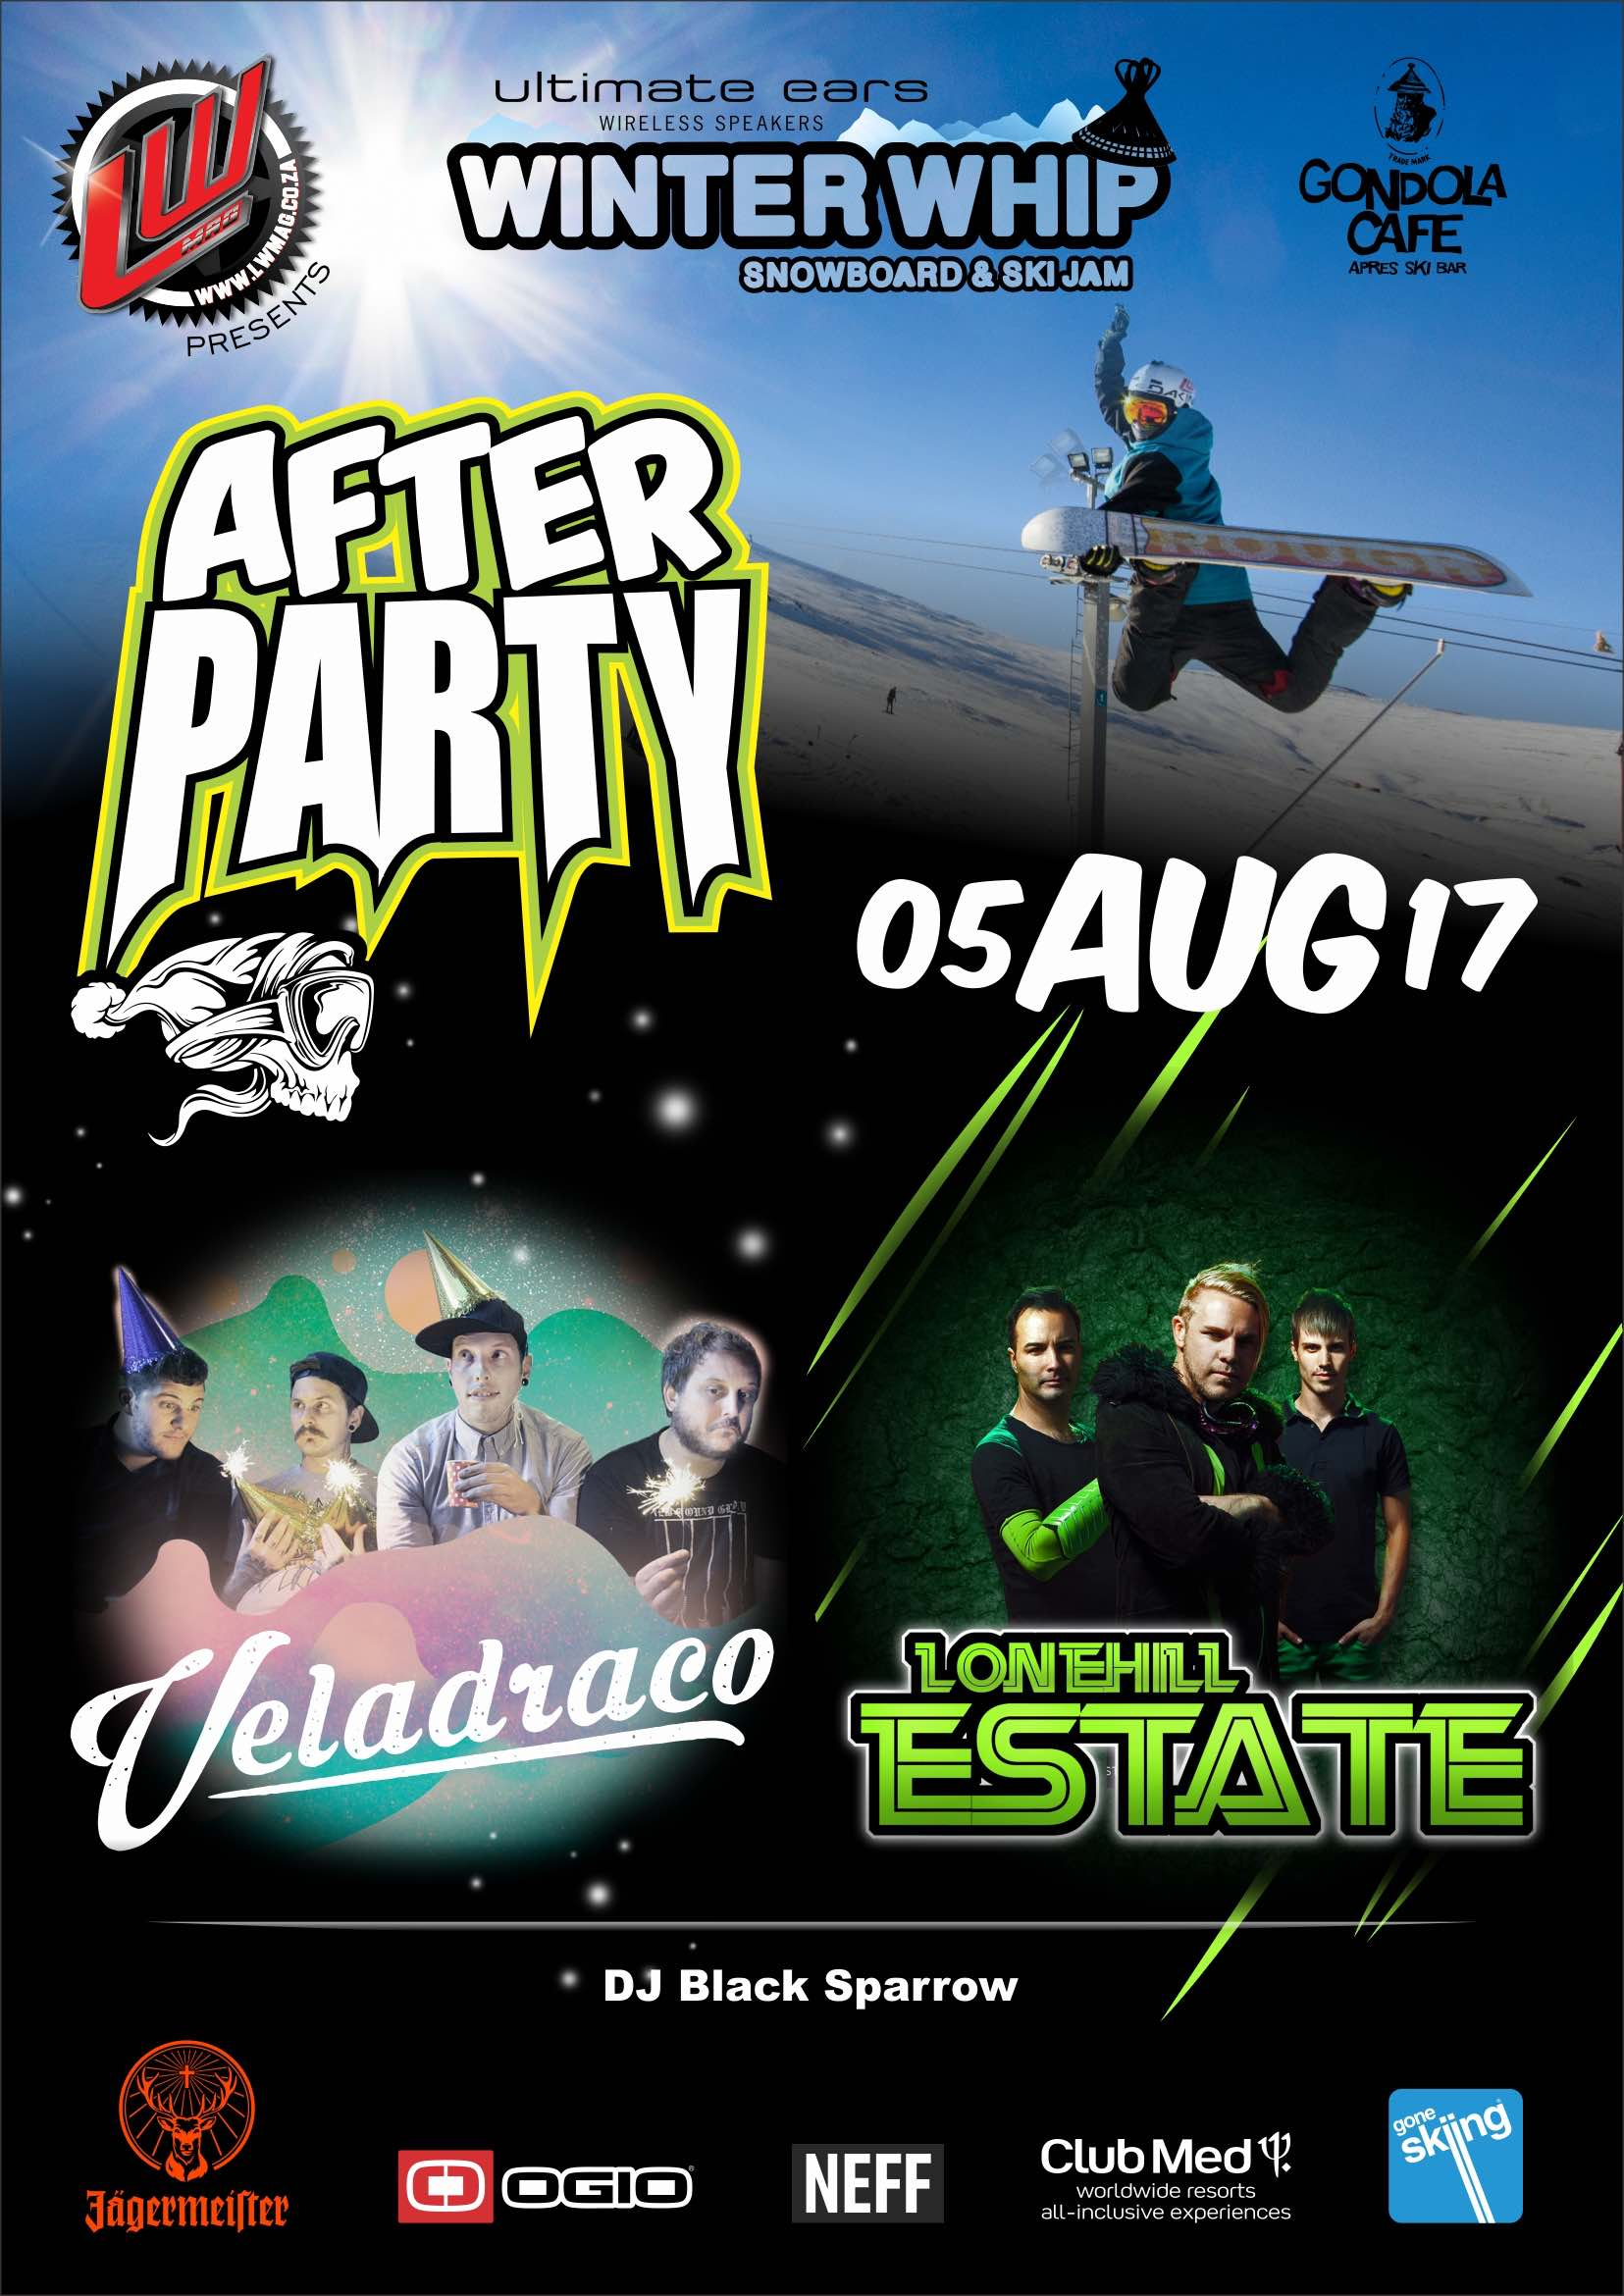 Veledraco and Lonehill Estate to perform at the Ultimate Ears Winter Whip afterparty